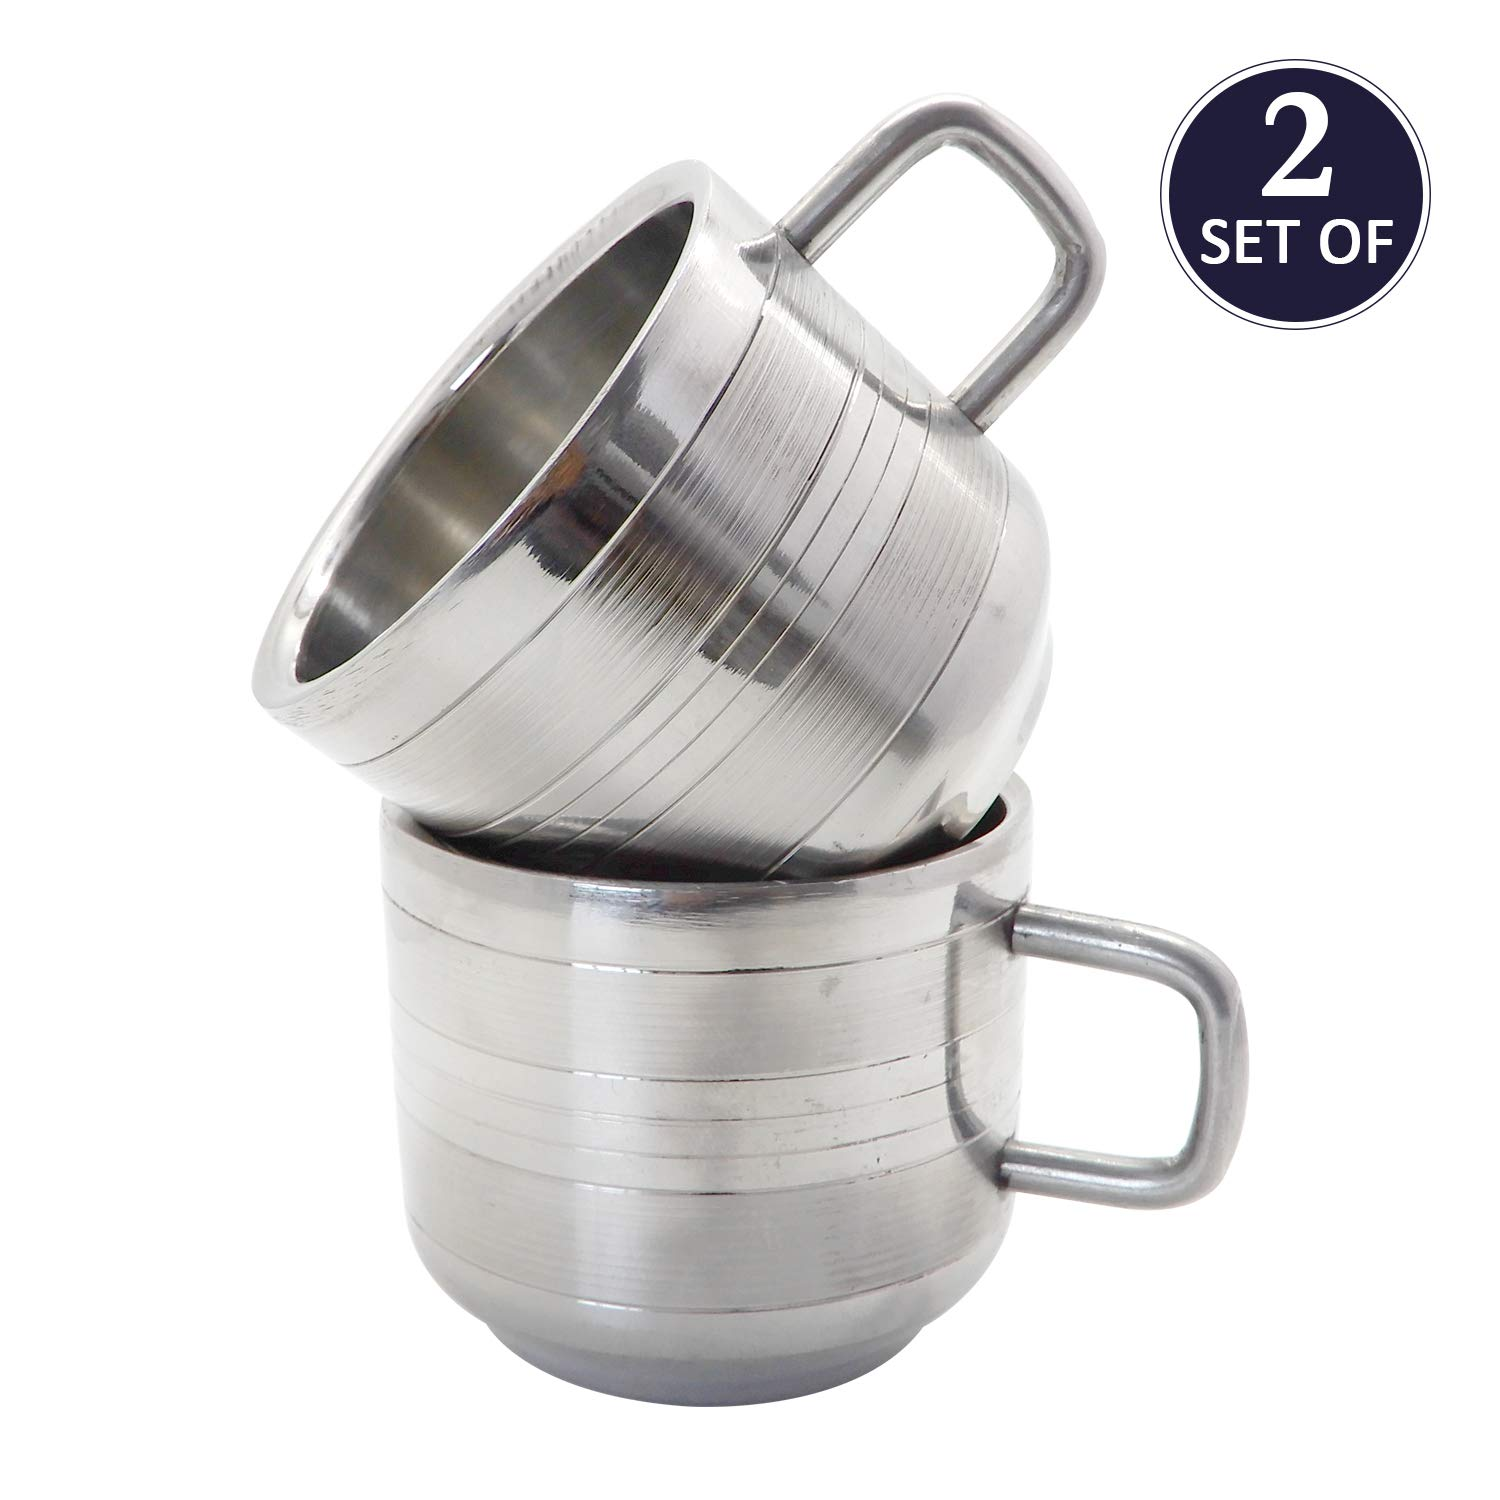 Reusable /& Stackable Mirror Finish /& Dishwasher Safe WhopperIndia Coffee Cup Espresso Cup Mug Set of 4 6 Ounce Double Wall Stainless Steel Tea Cups